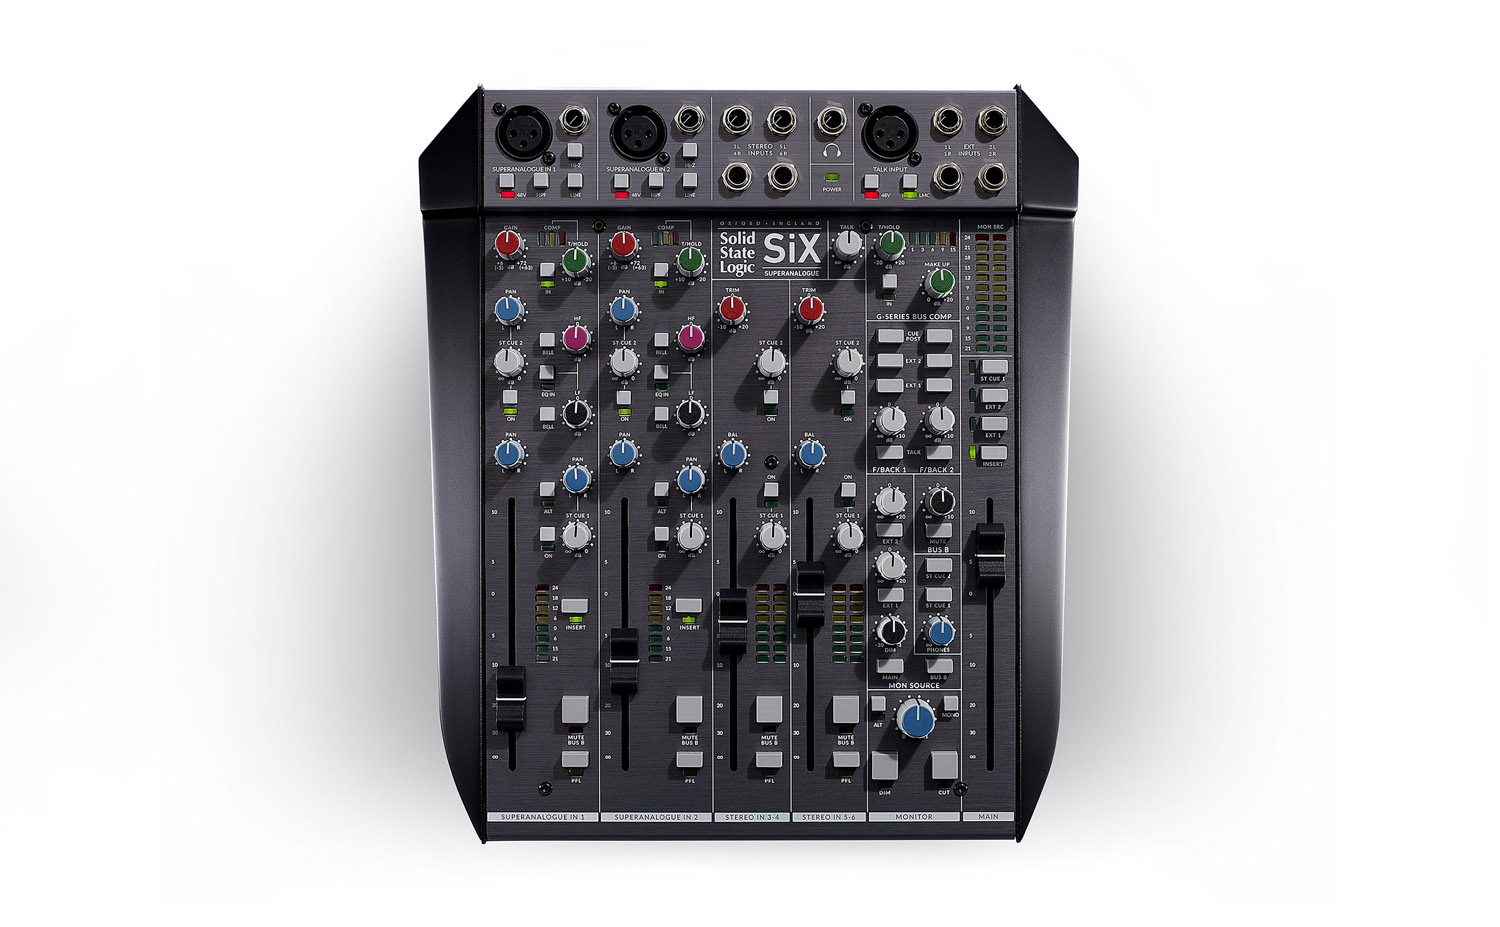 SSL SiX hardware analog mixer studio live midiware audiofader